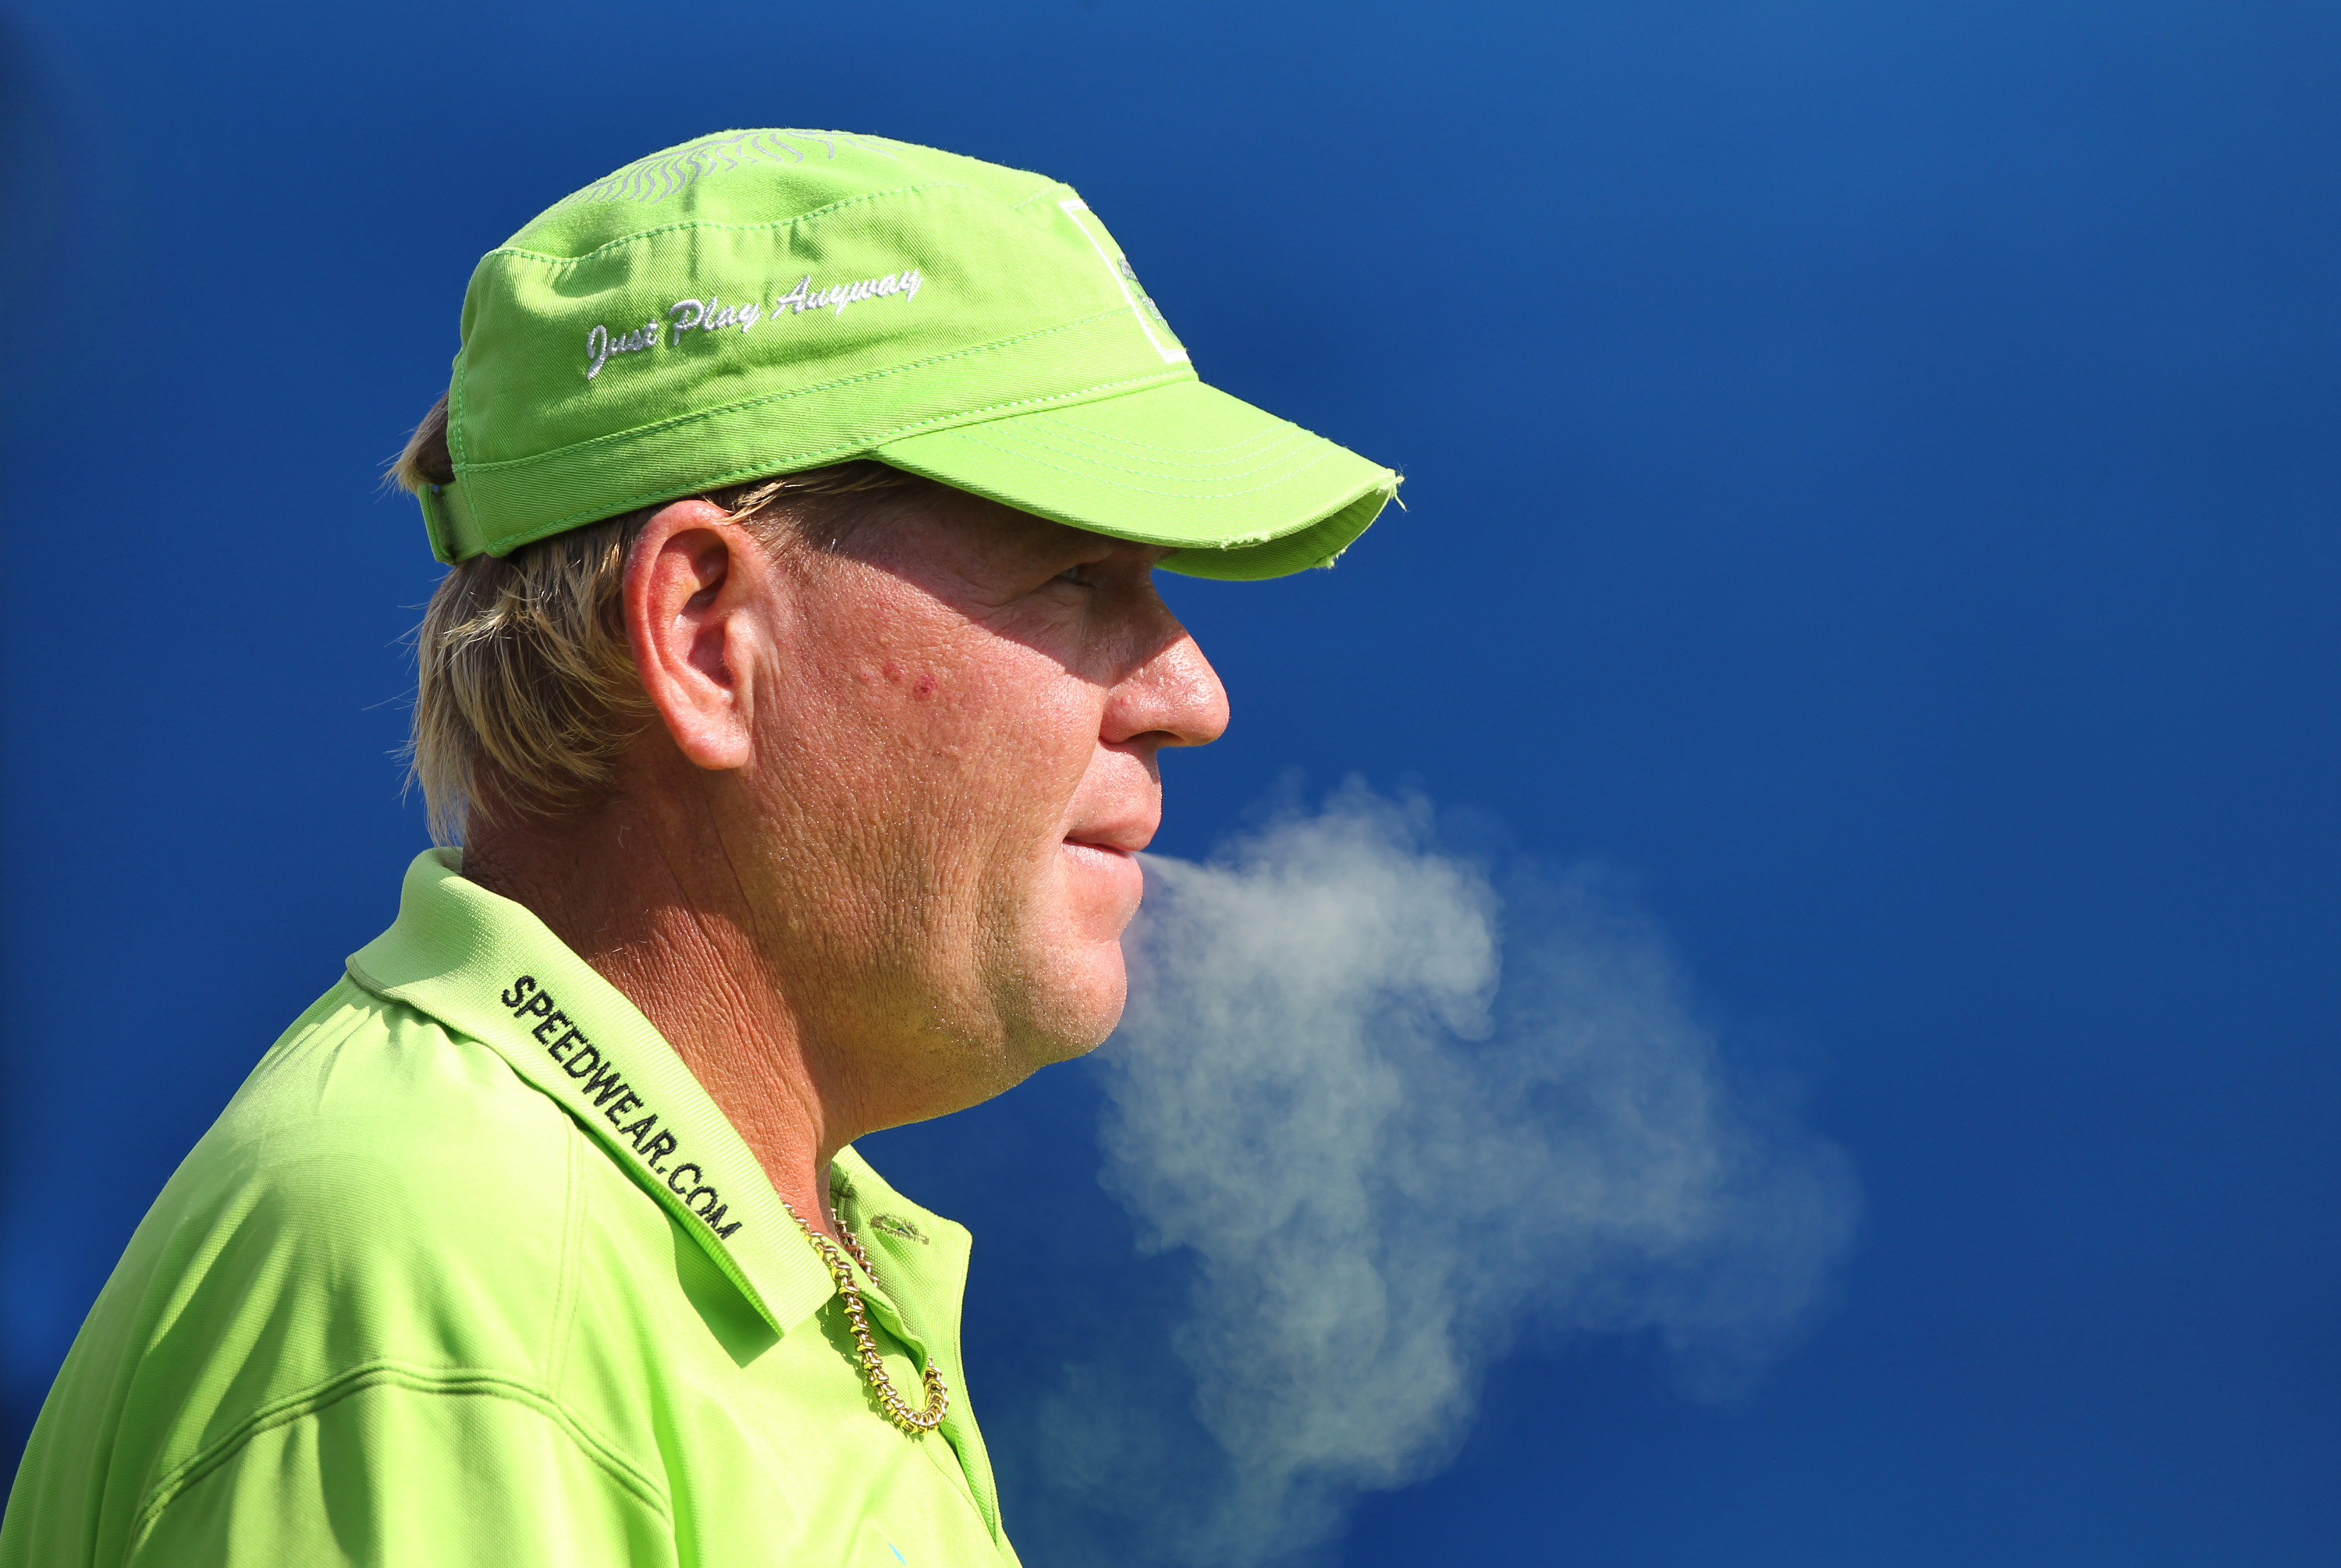 GREENSBORO, NC - AUGUST 20: John Daly has a smoke on the 10th tee during the second round of the Wyndham  Championship at Sedgefield Country Club on August 20, 2010 in Greensboro, North Carolina. (Photo by Hunter Martin/Getty Images)